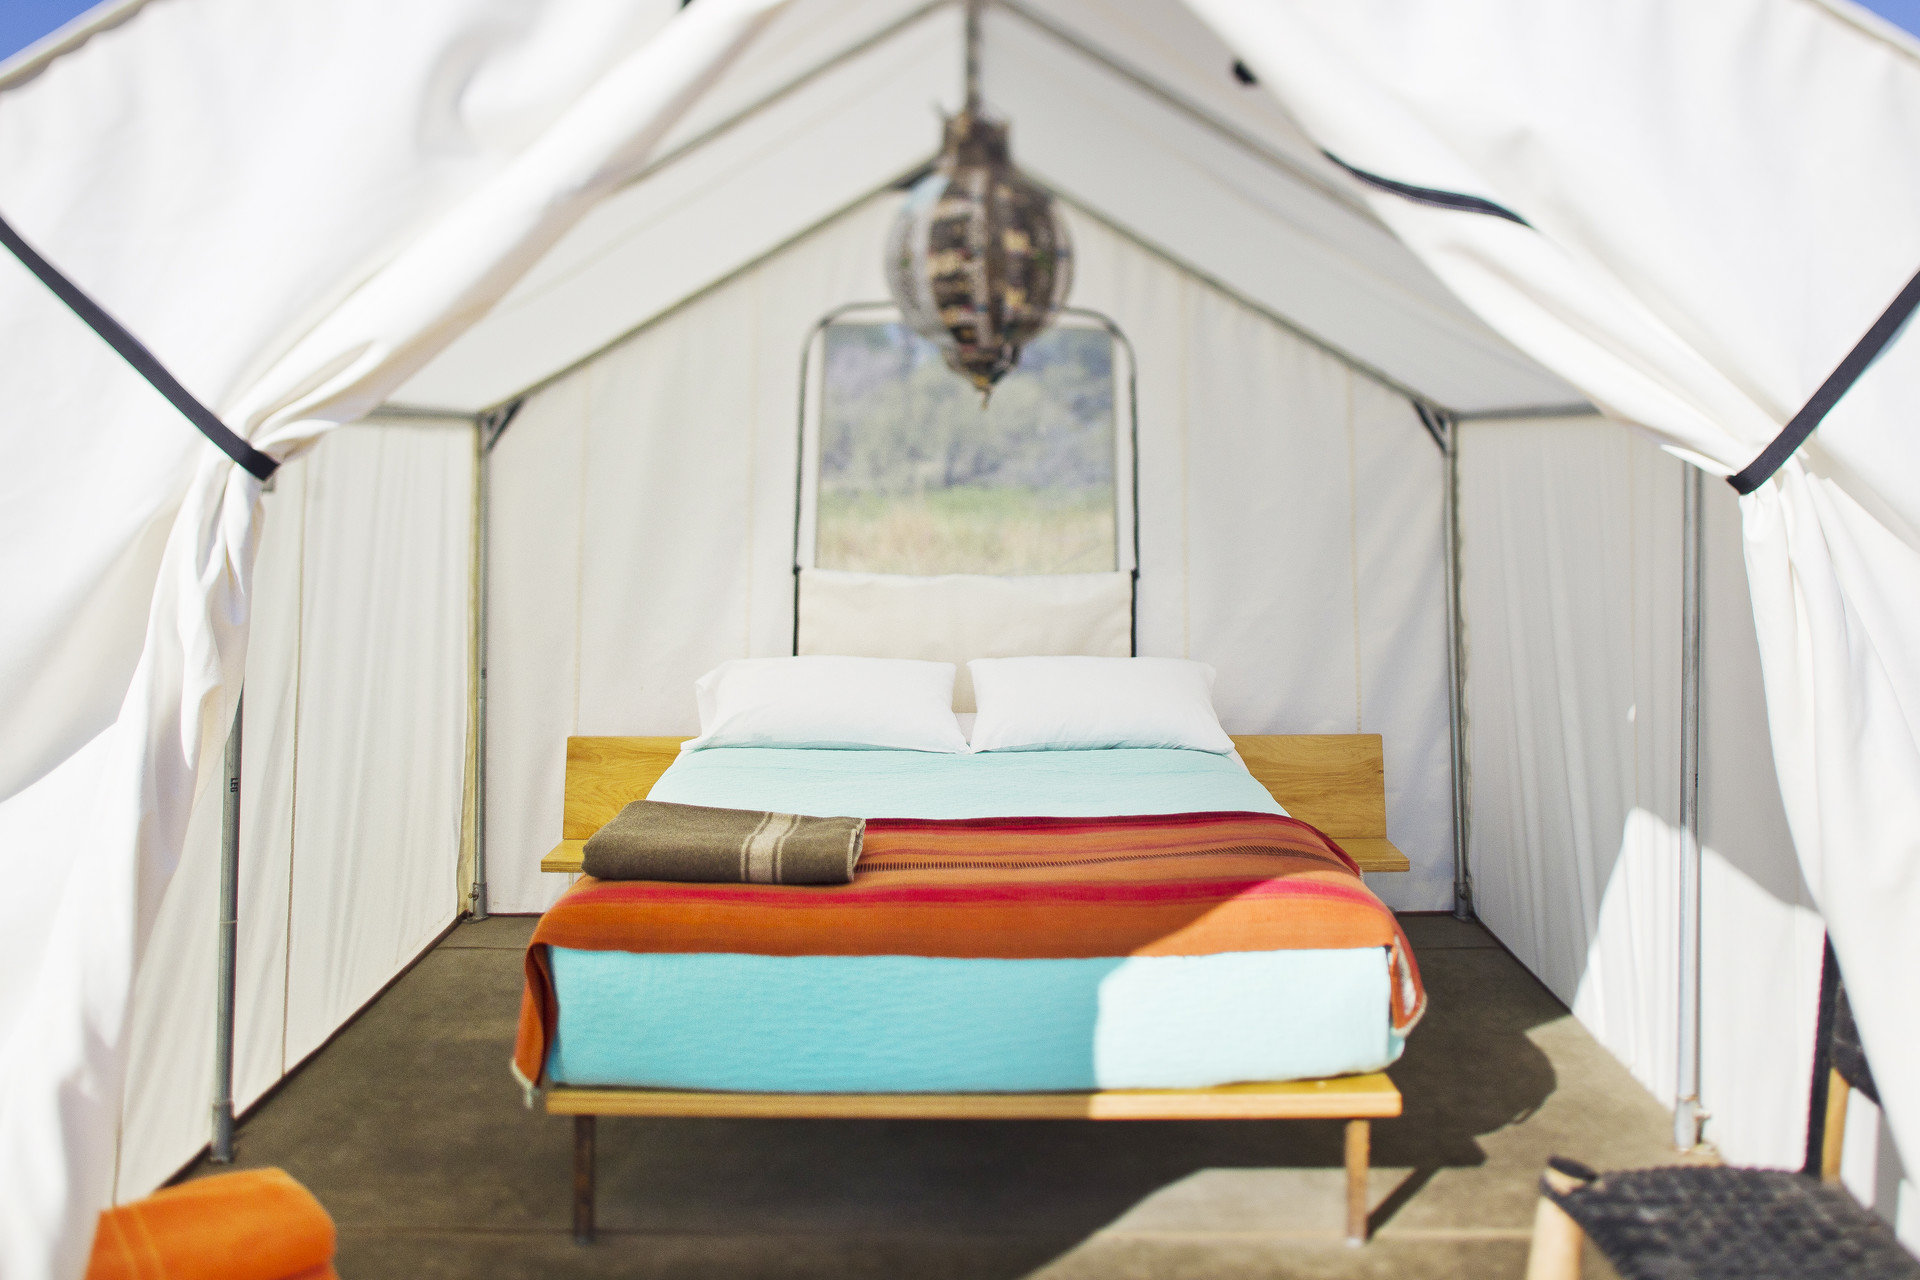 artistic artsy bed Bedroom Glamping Hip interior isolation Luxury Travel quirky remote tent tents trendy Trip Ideas indoor floor room product furniture cottage